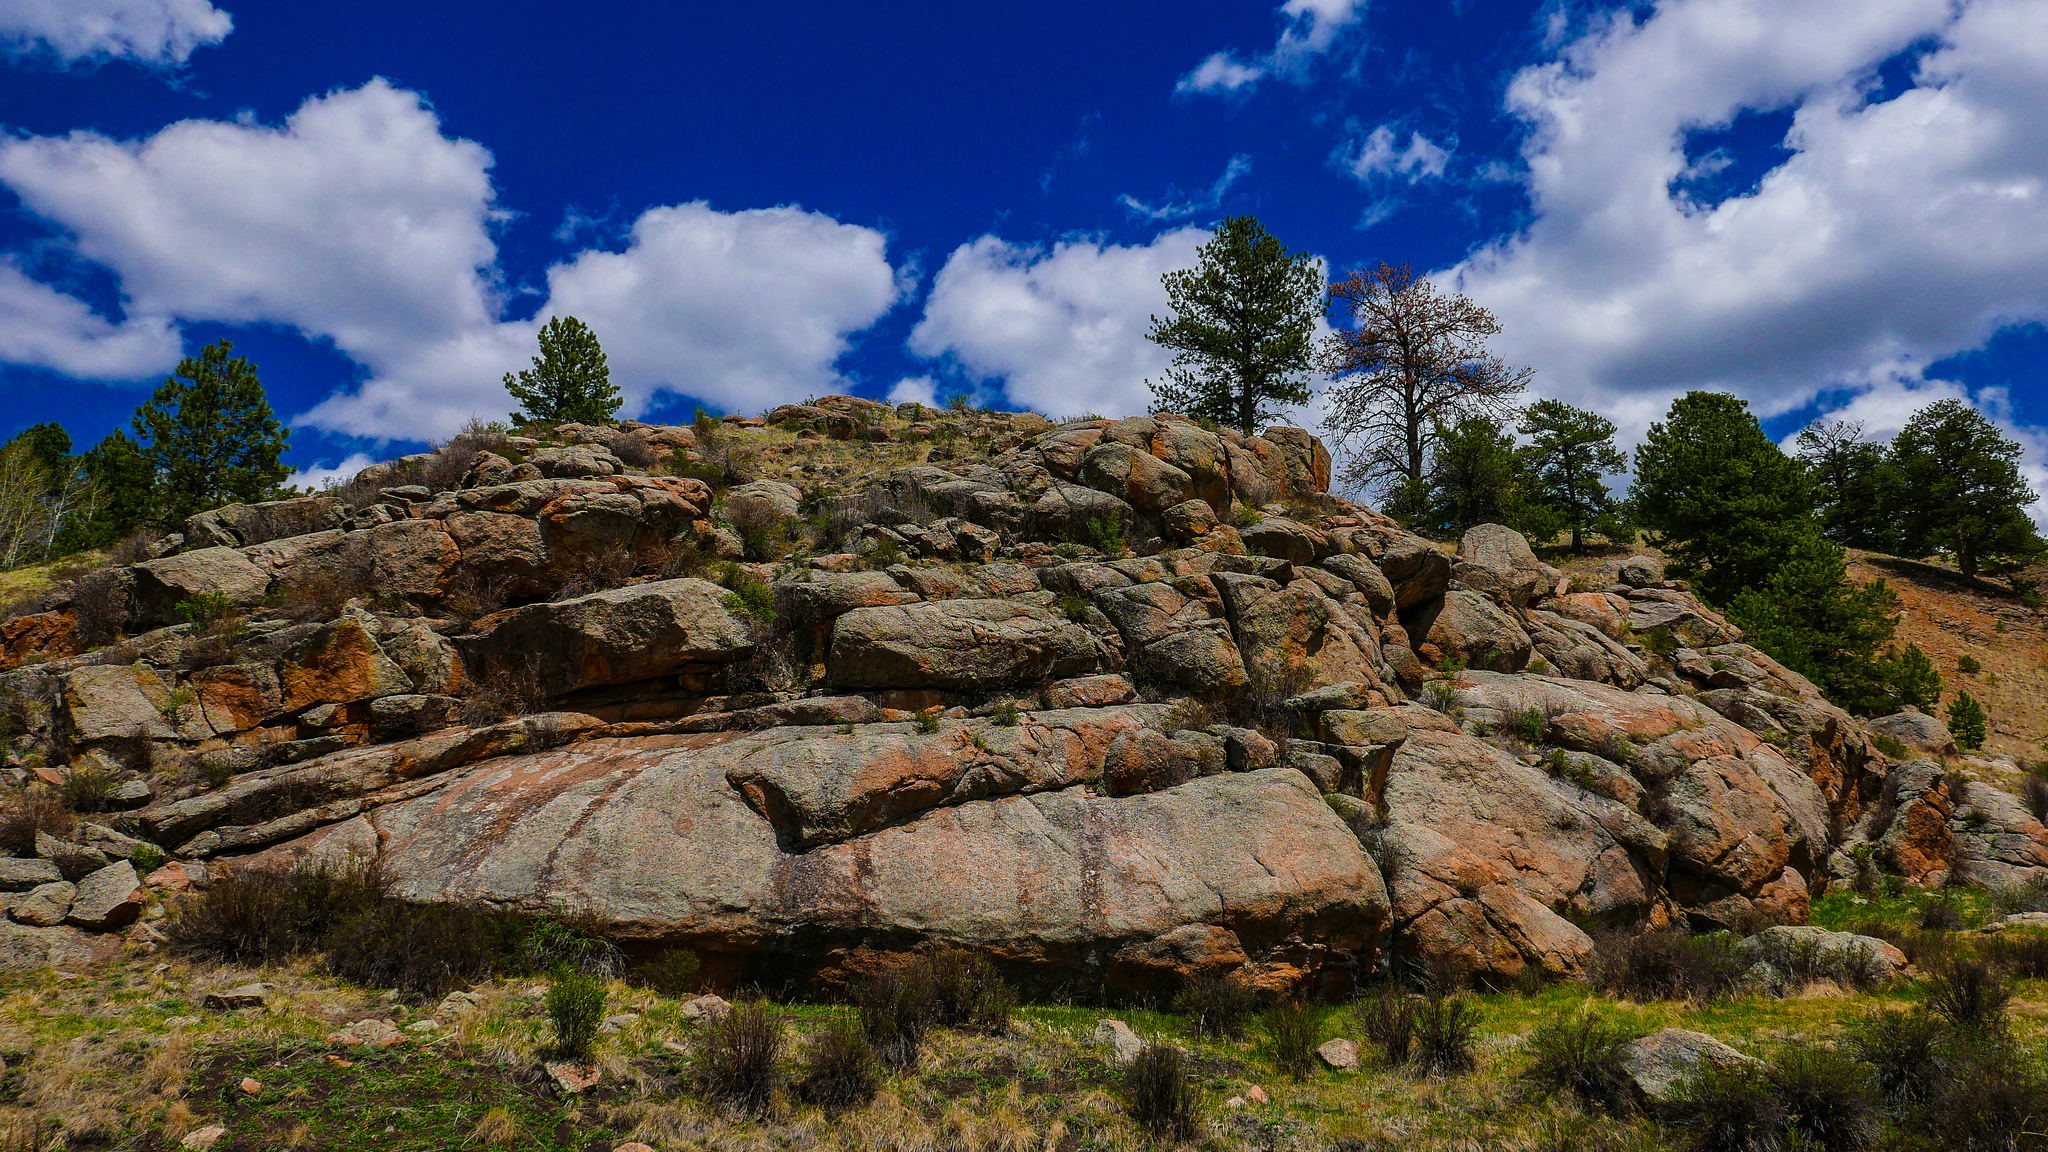 Florissant Fossil Beds National Park, Colorado